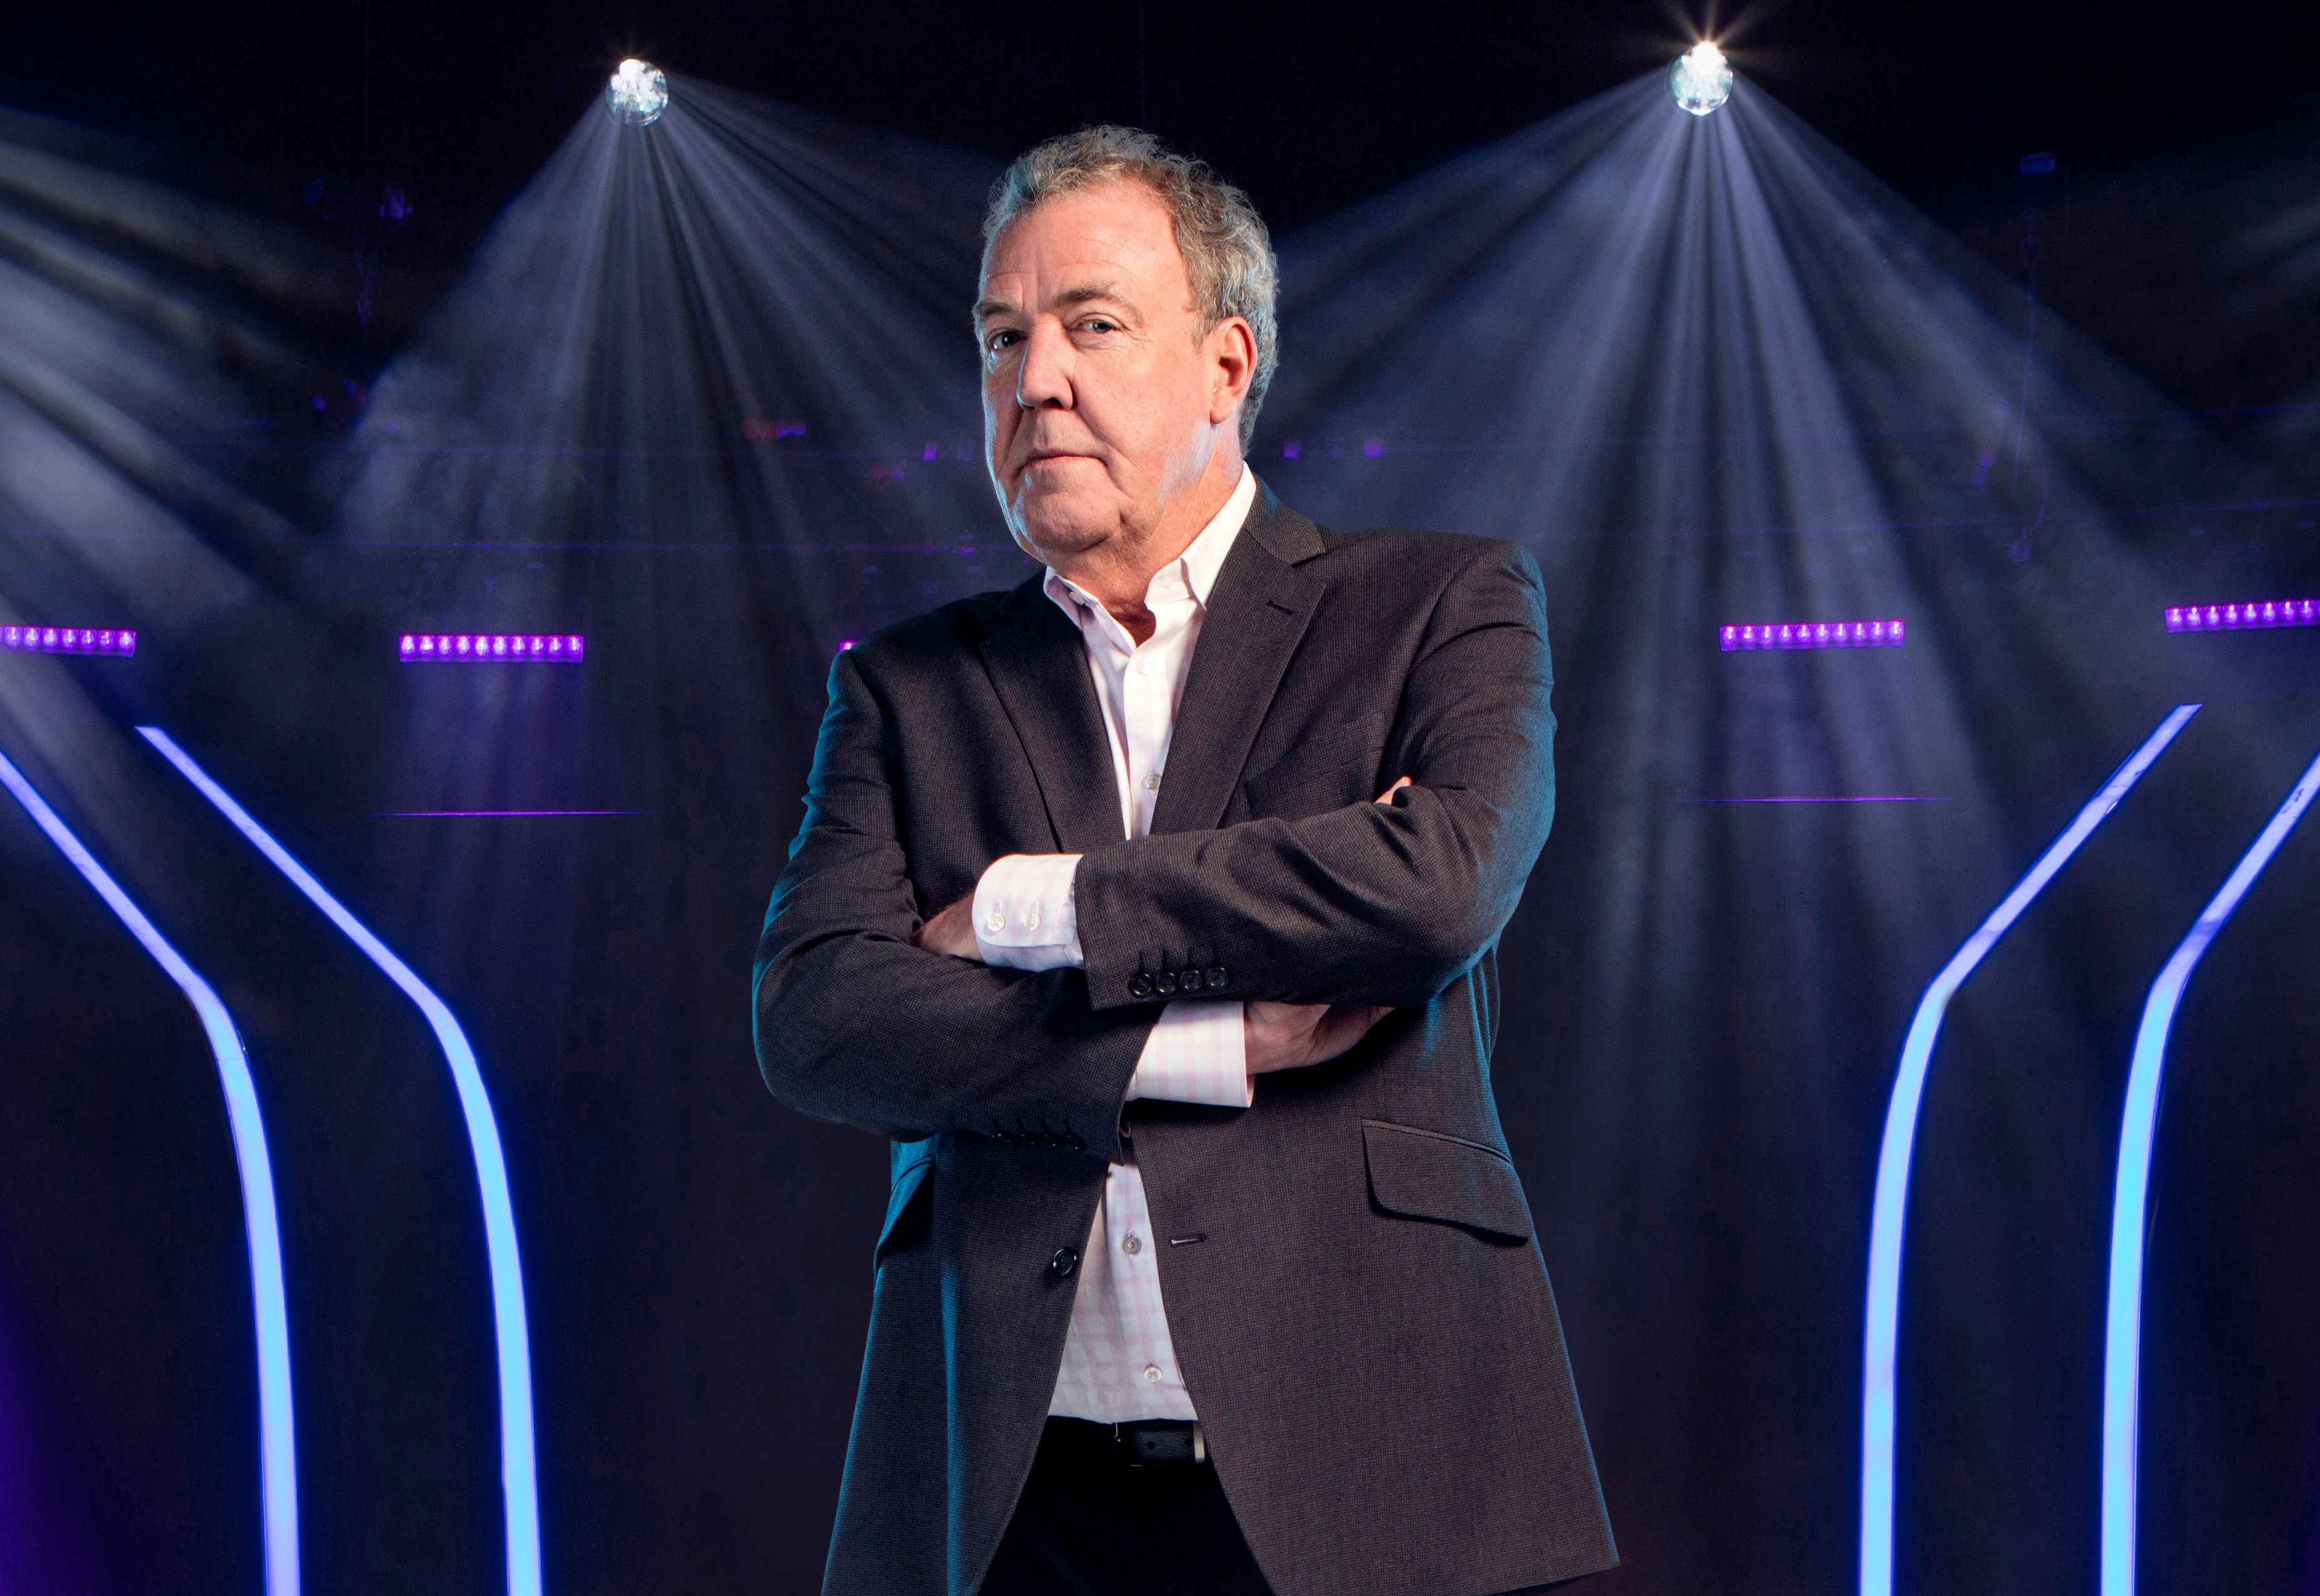 Jeremy Clarkson's Knowledge Put To The Test With New 'Who Wants To Be A Millionaire?'